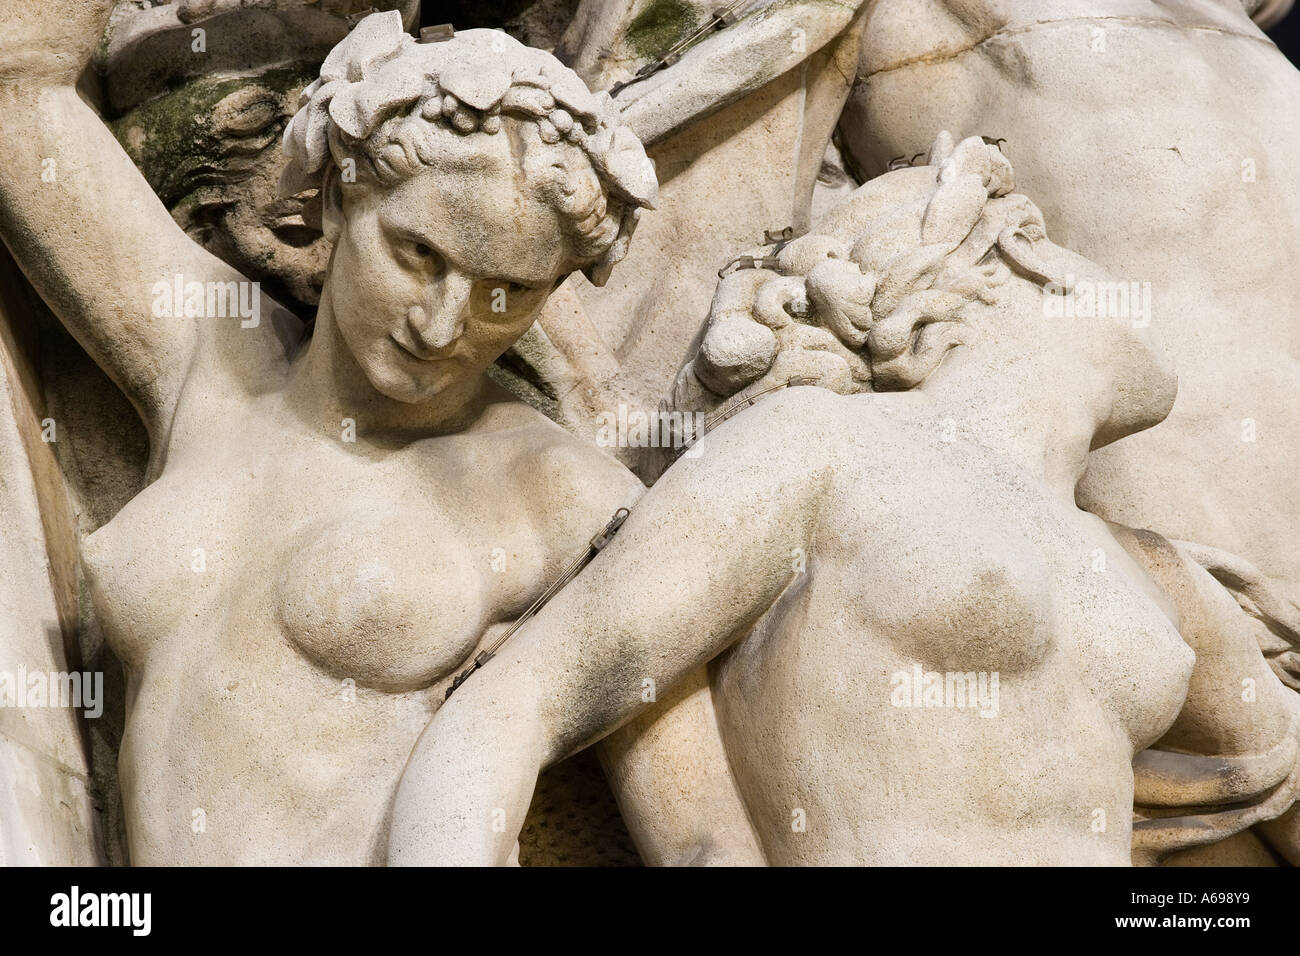 France, Paris, 9th arr., façade detail of Opera (Palais Garnier), statues, building in background - Stock Image